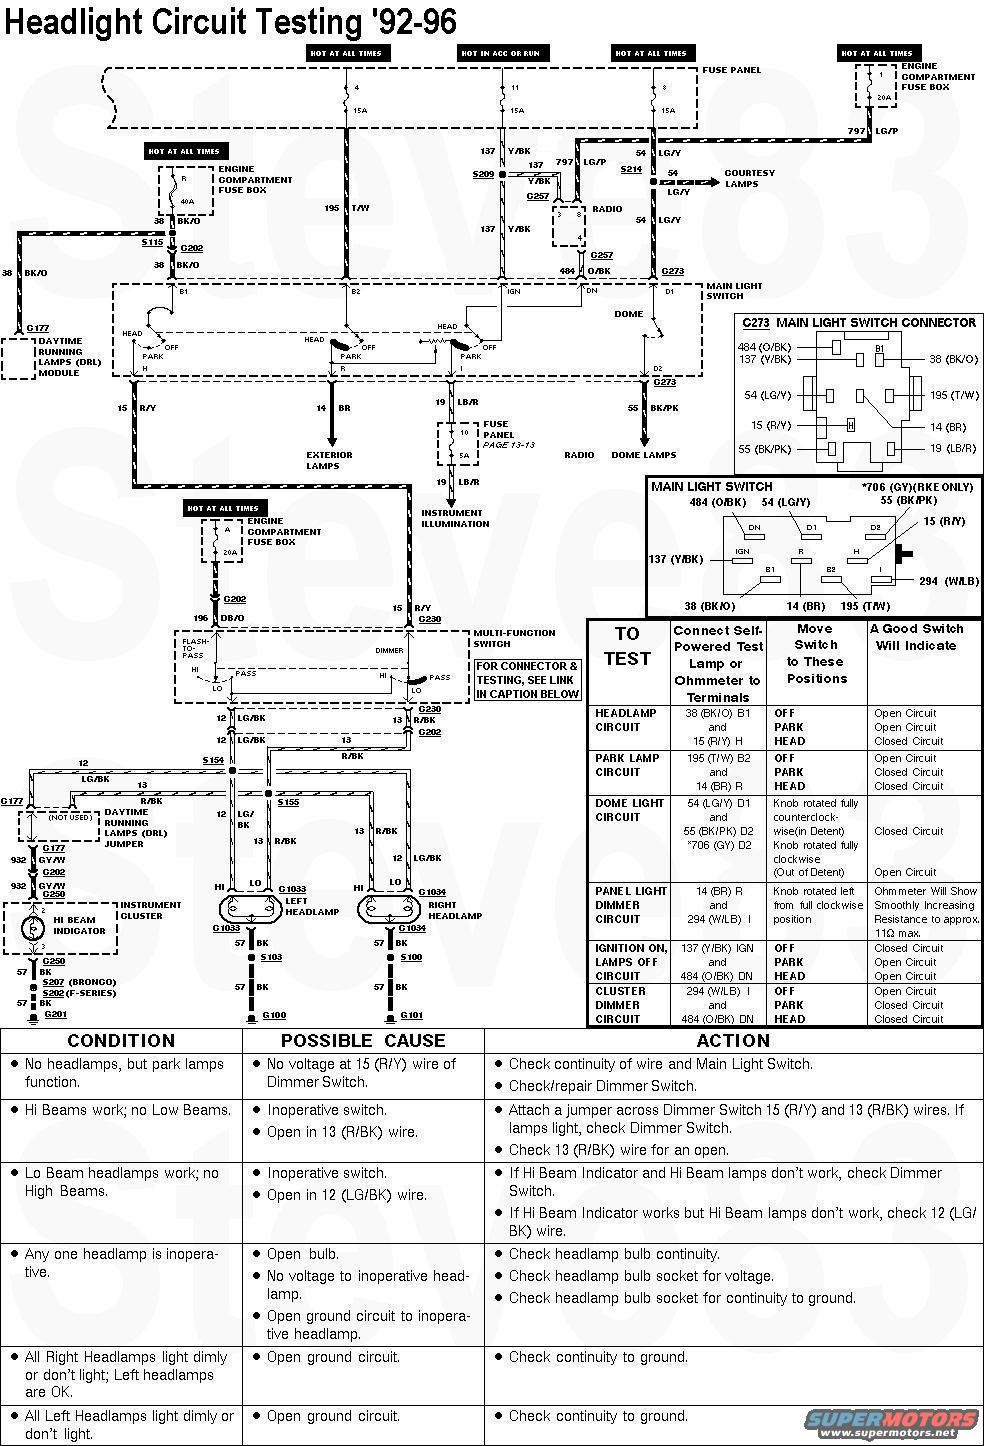 19 New Floor Mounted Dimmer Switch Wiring Diagram